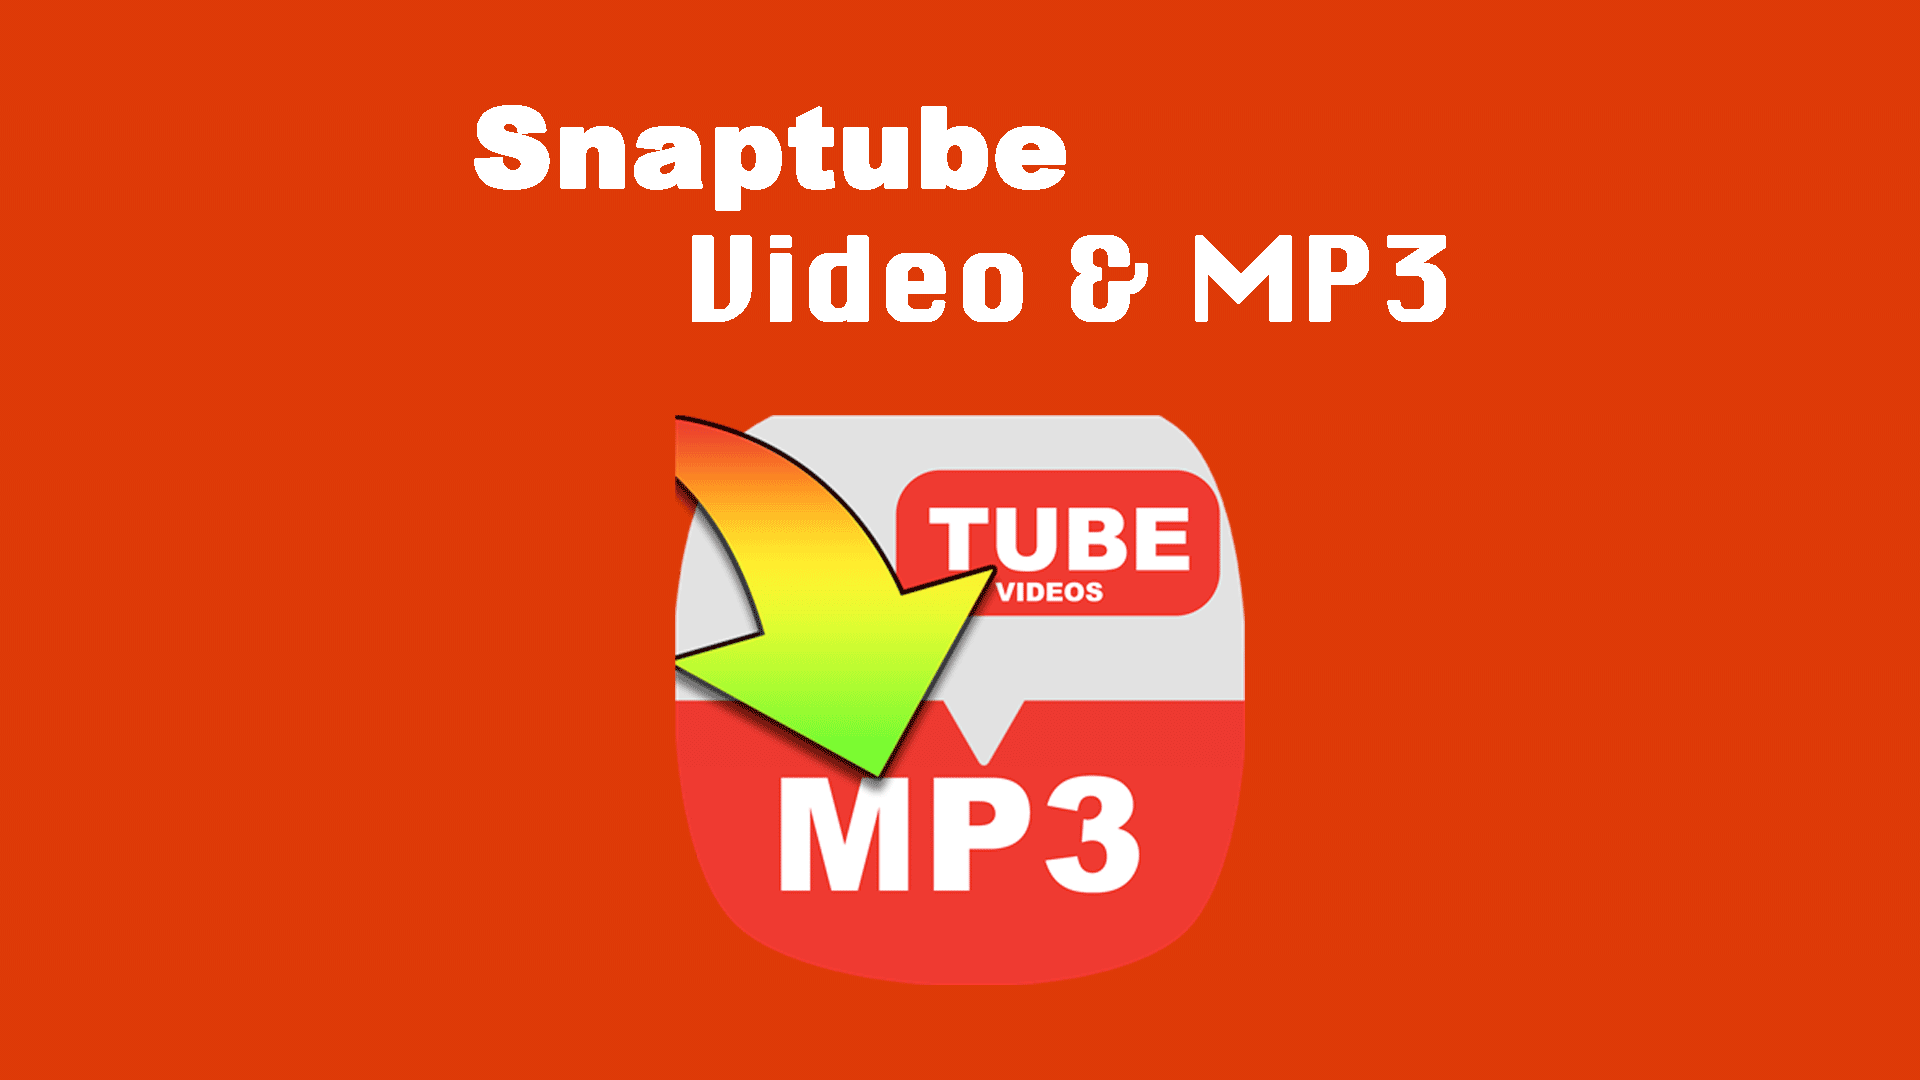 Snaptube apk for android download.